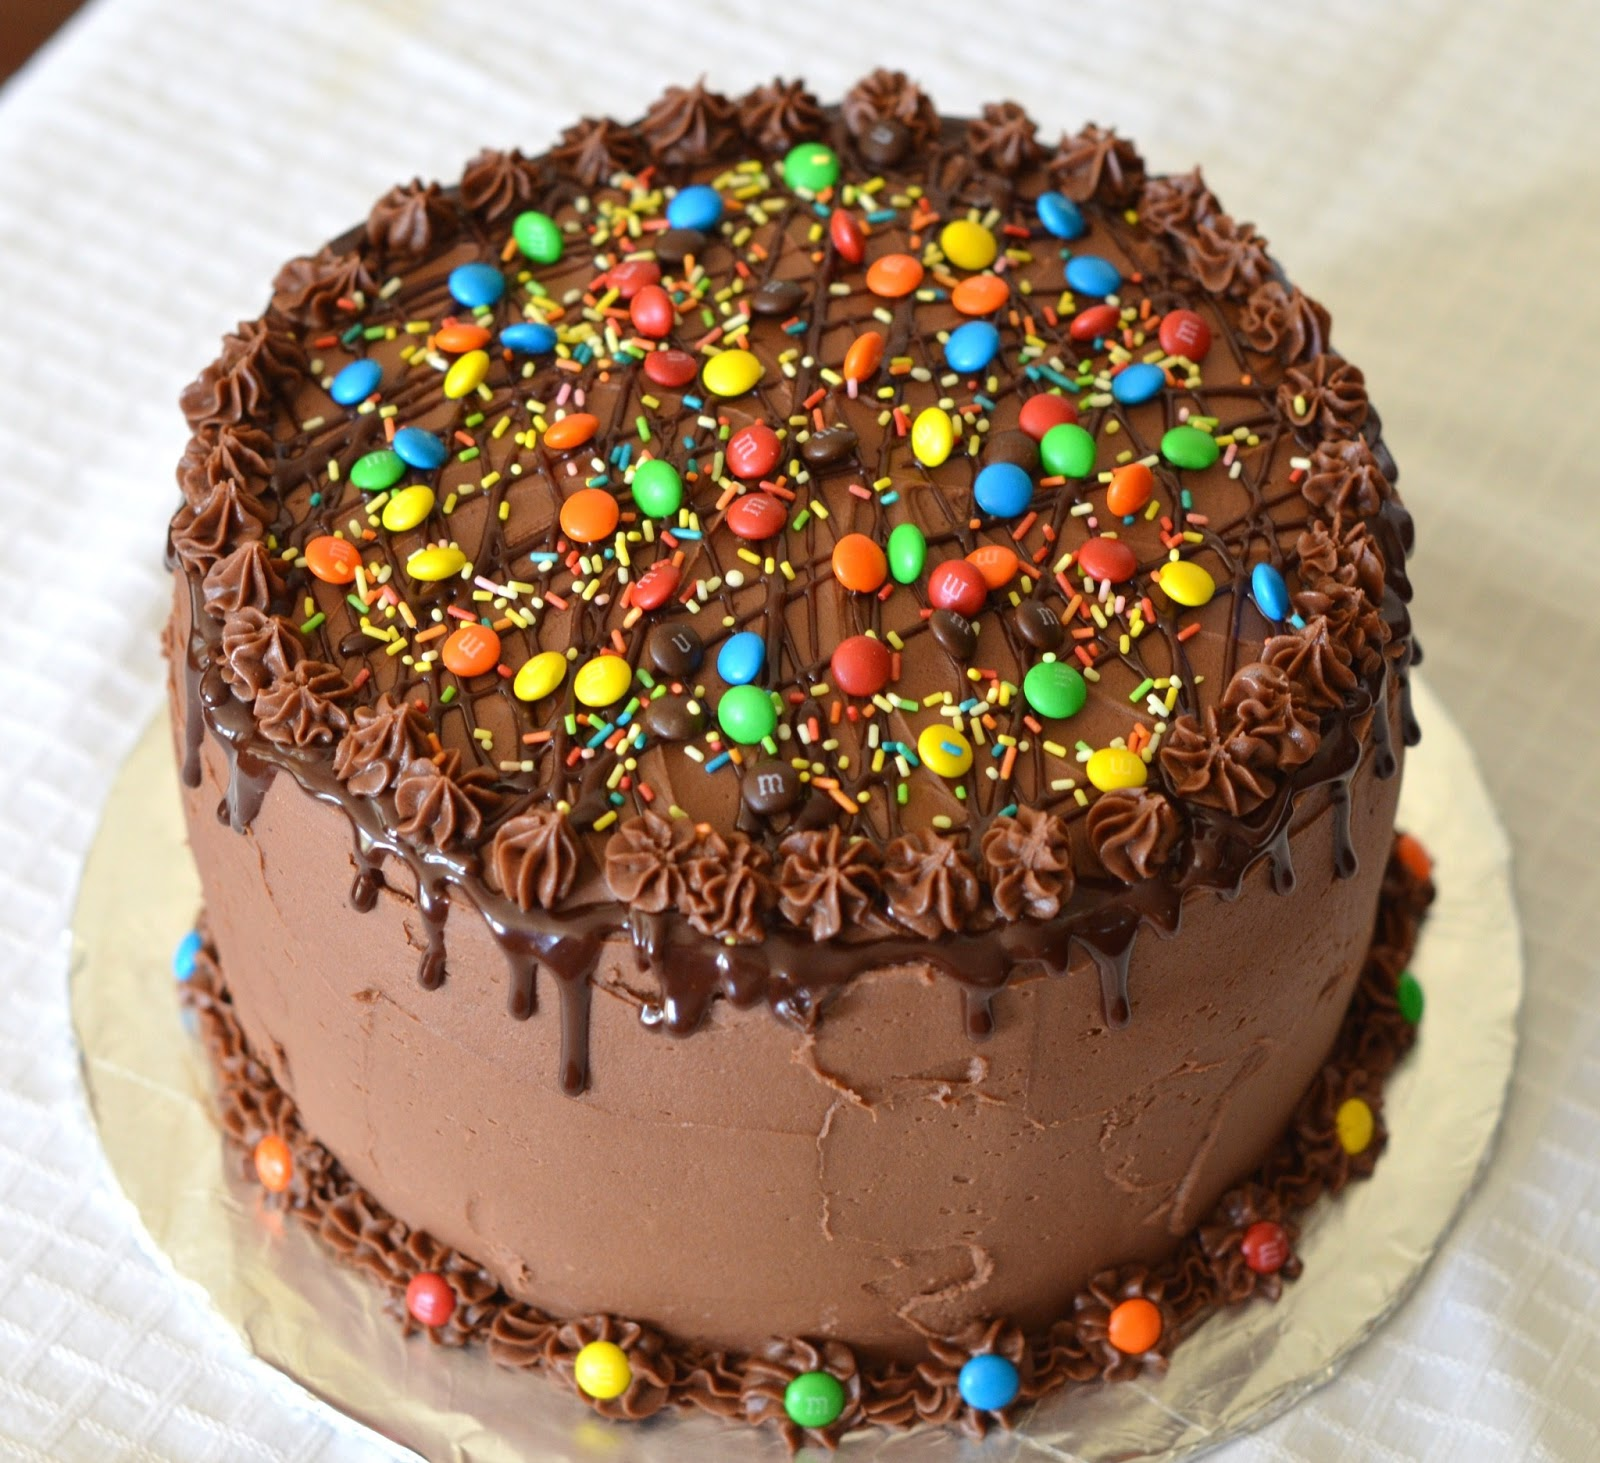 Smooth Cream and Pink Cake with Chocolate Drip and